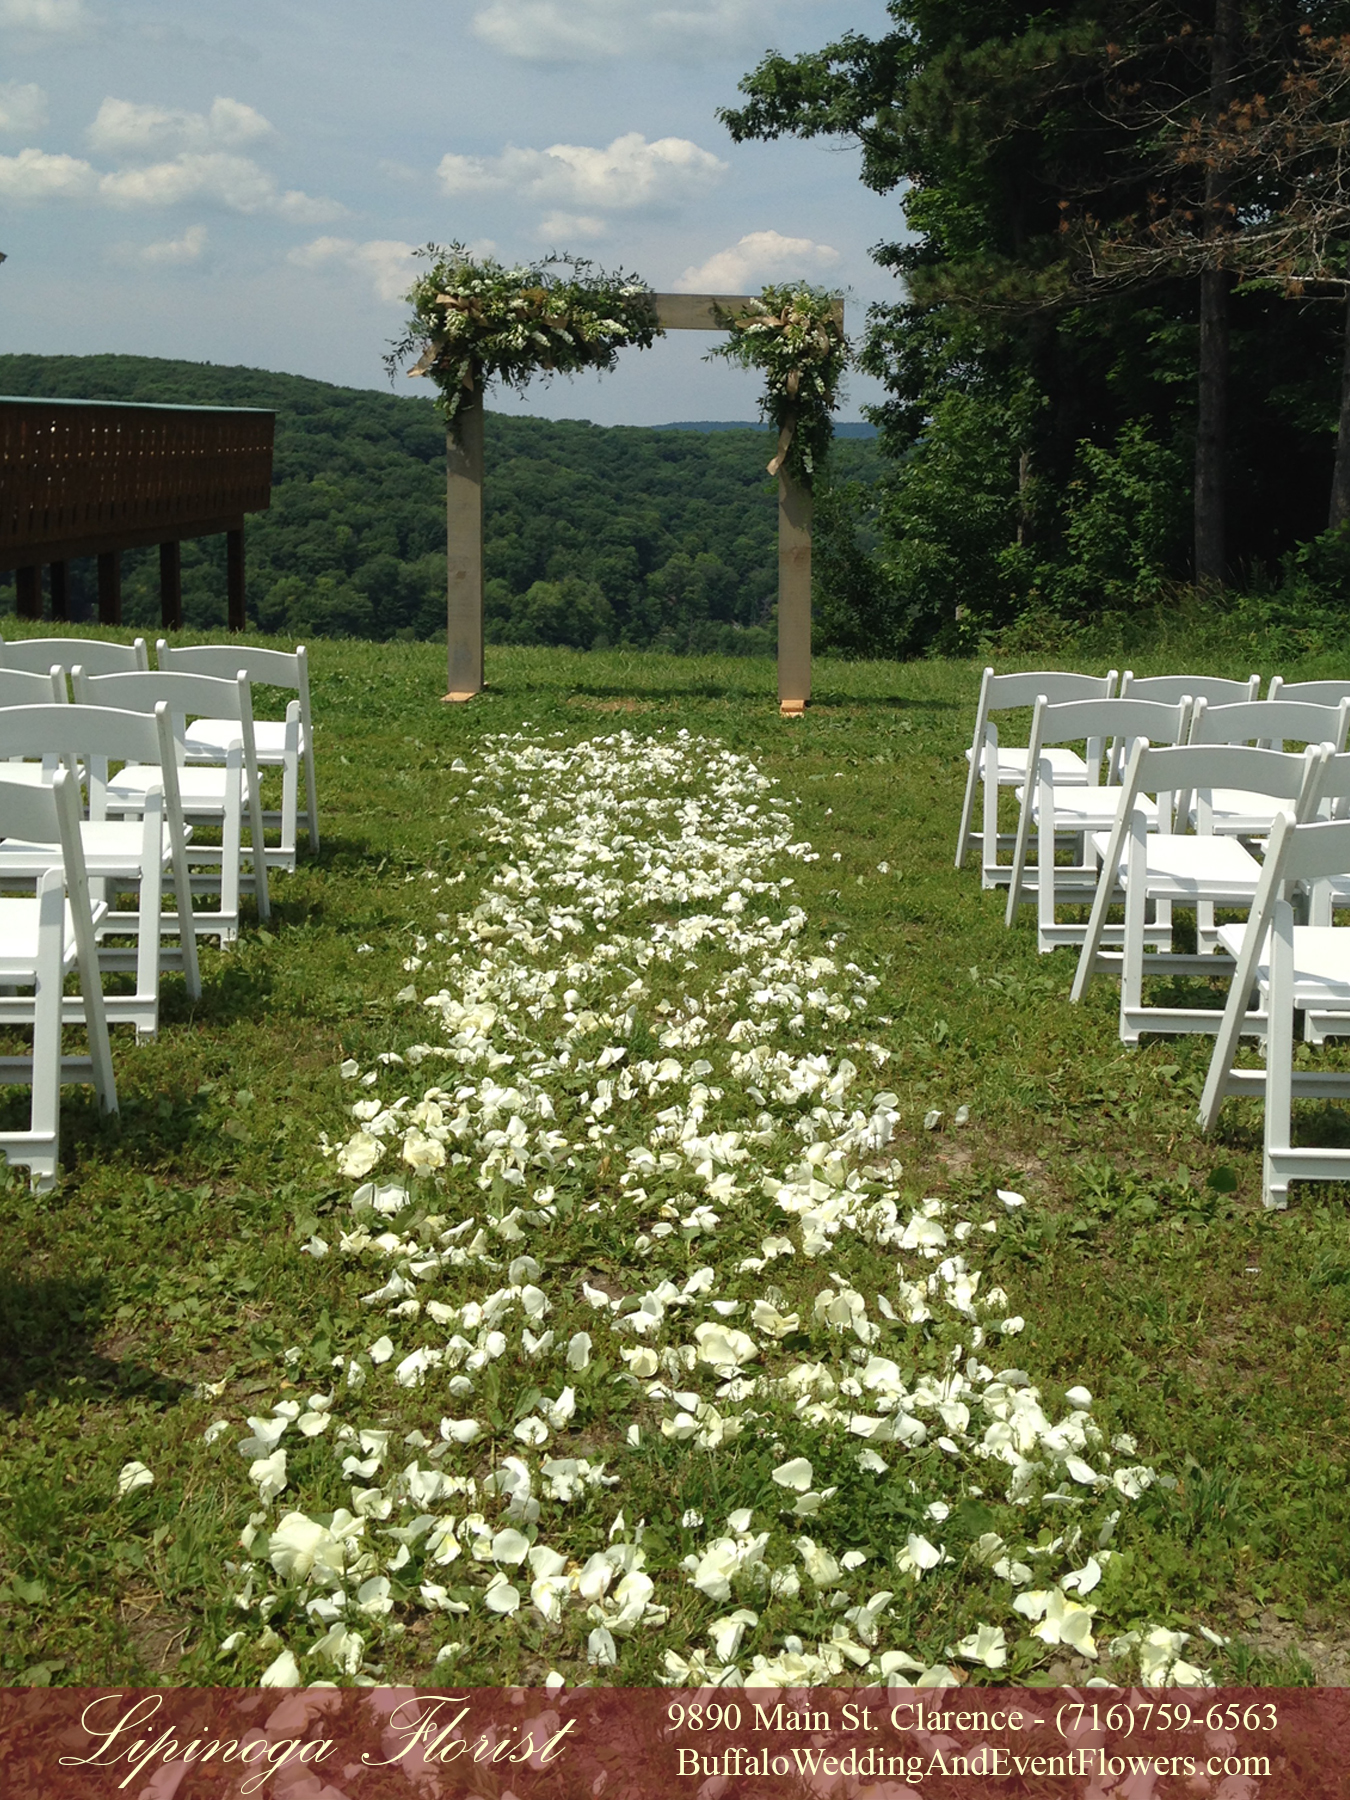 A Rustic Wedding At Holiday Valley In Ellicottville